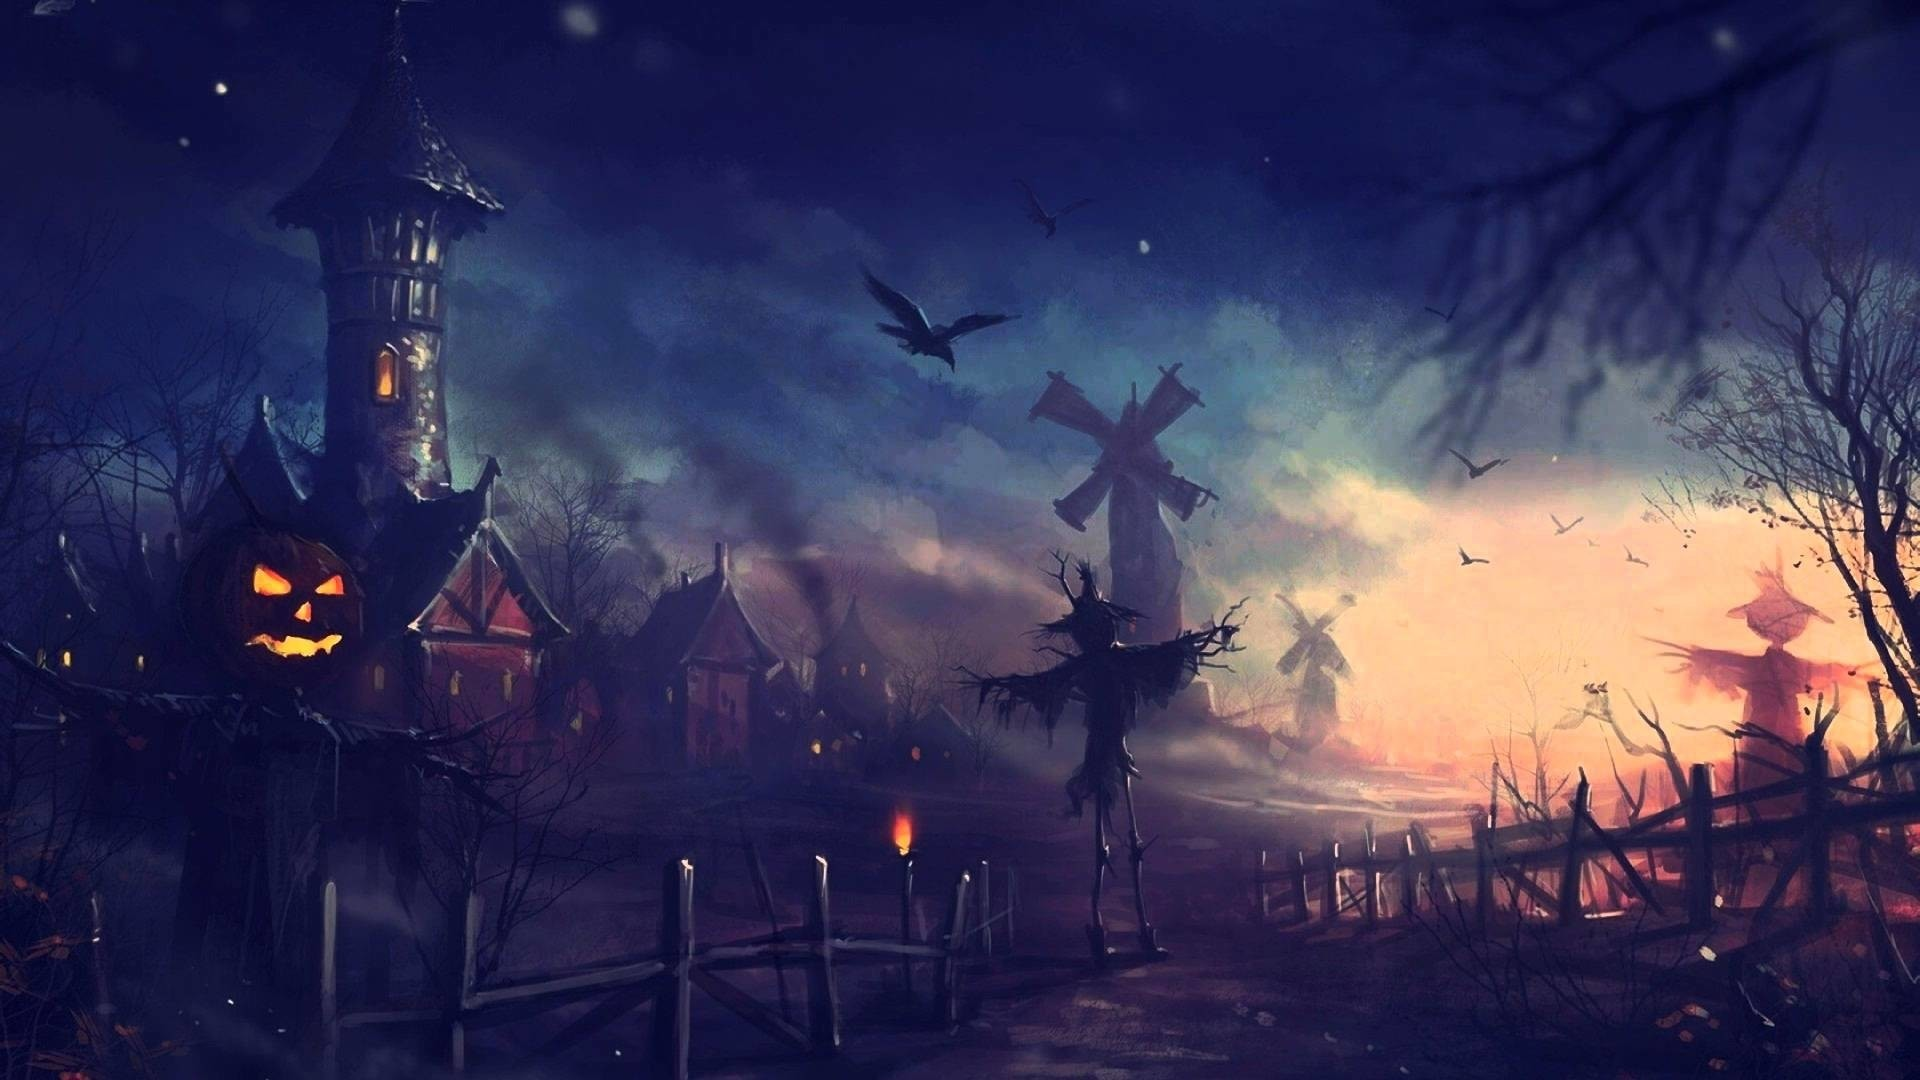 Res: 1920x1080, anime wallpaper halloween 436007 gorgerous anime halloween wallpaper   for windows 10